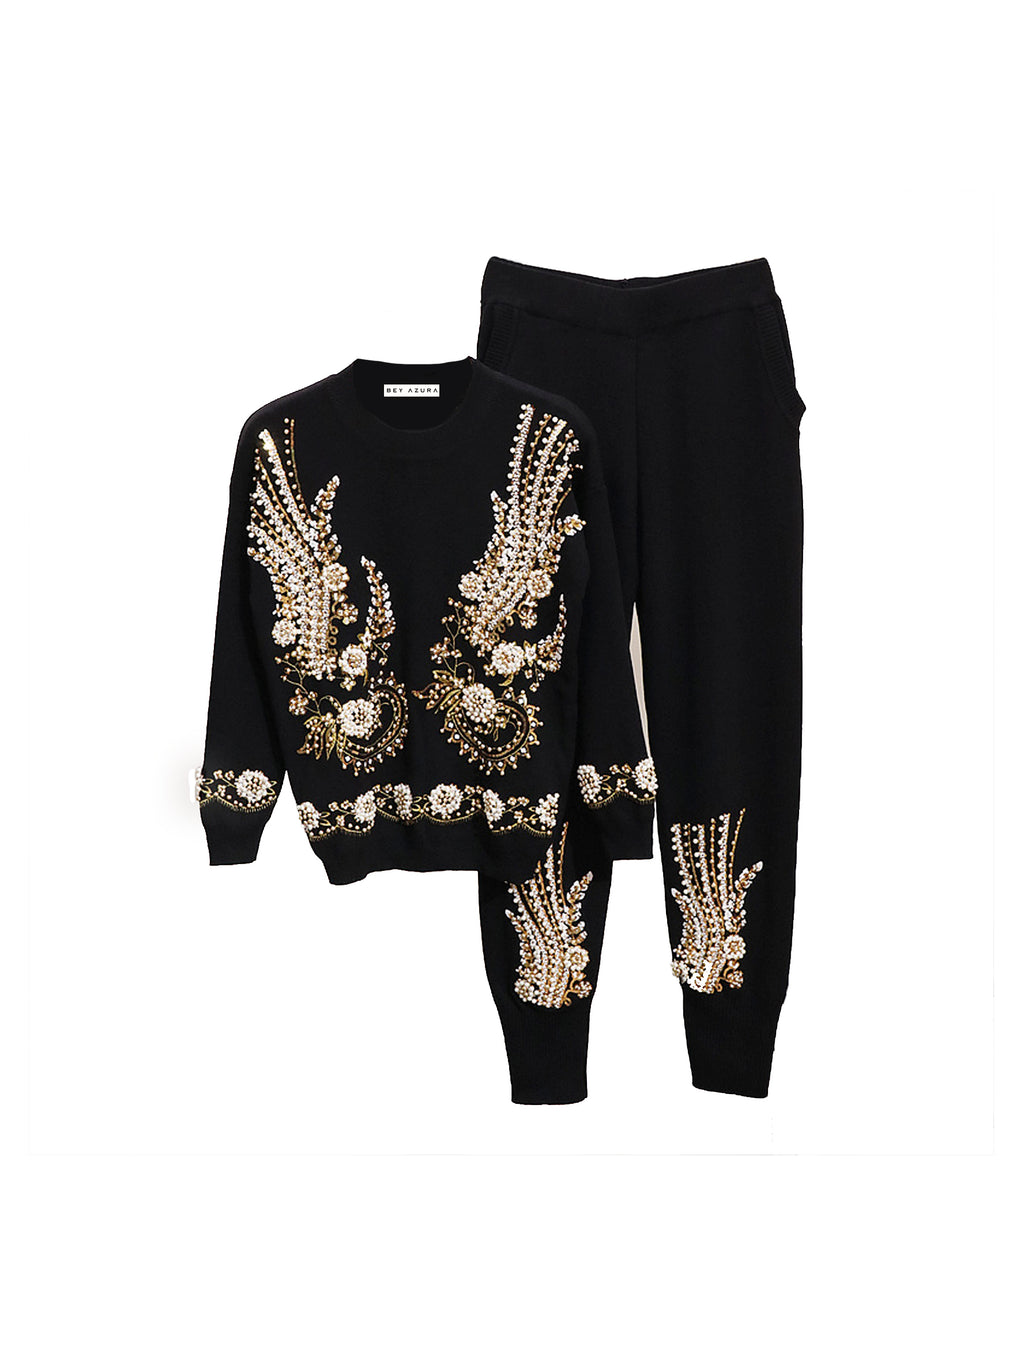 TWO PIECE LOUNGEWEAR WITH PEACOCK GOLD BEADINGS - BEYAZURA.COM